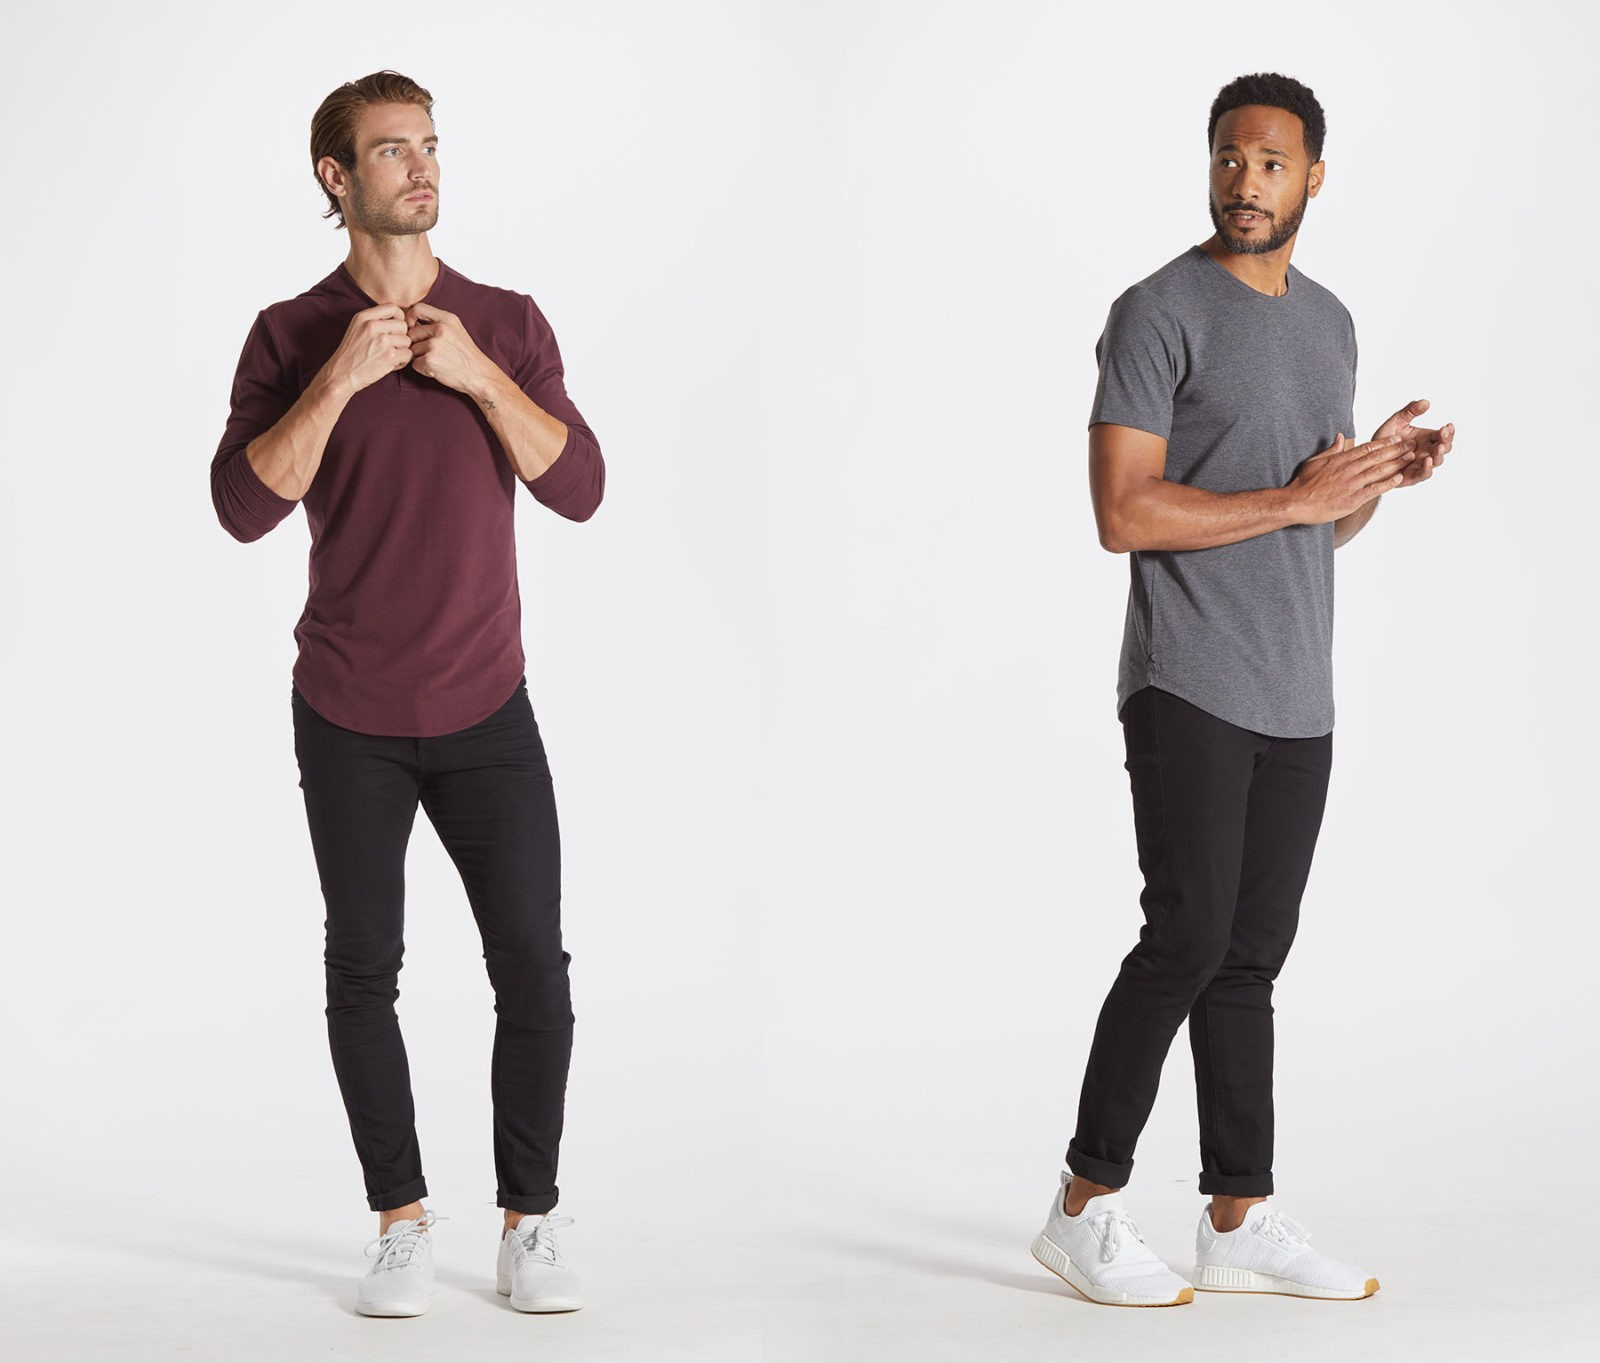 Los-Angeles-Clothing-Product-Photography-Studio